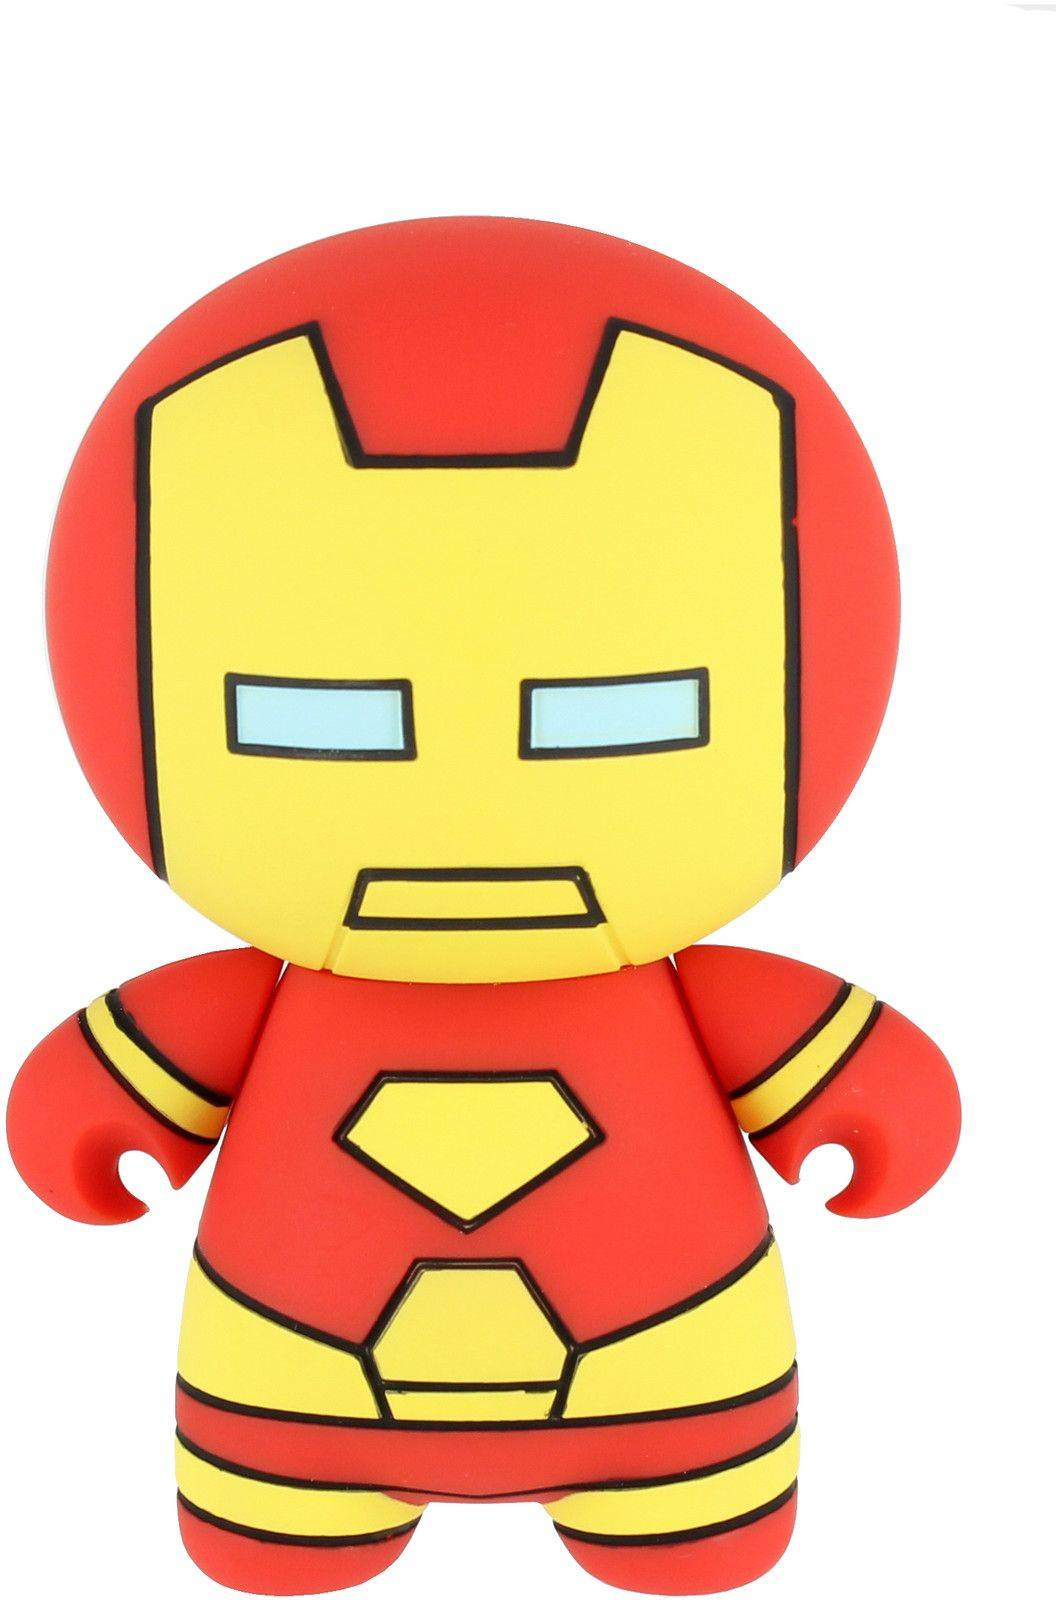 Disney Marvel Kuva Iron Man PowerBank 2600 mAh